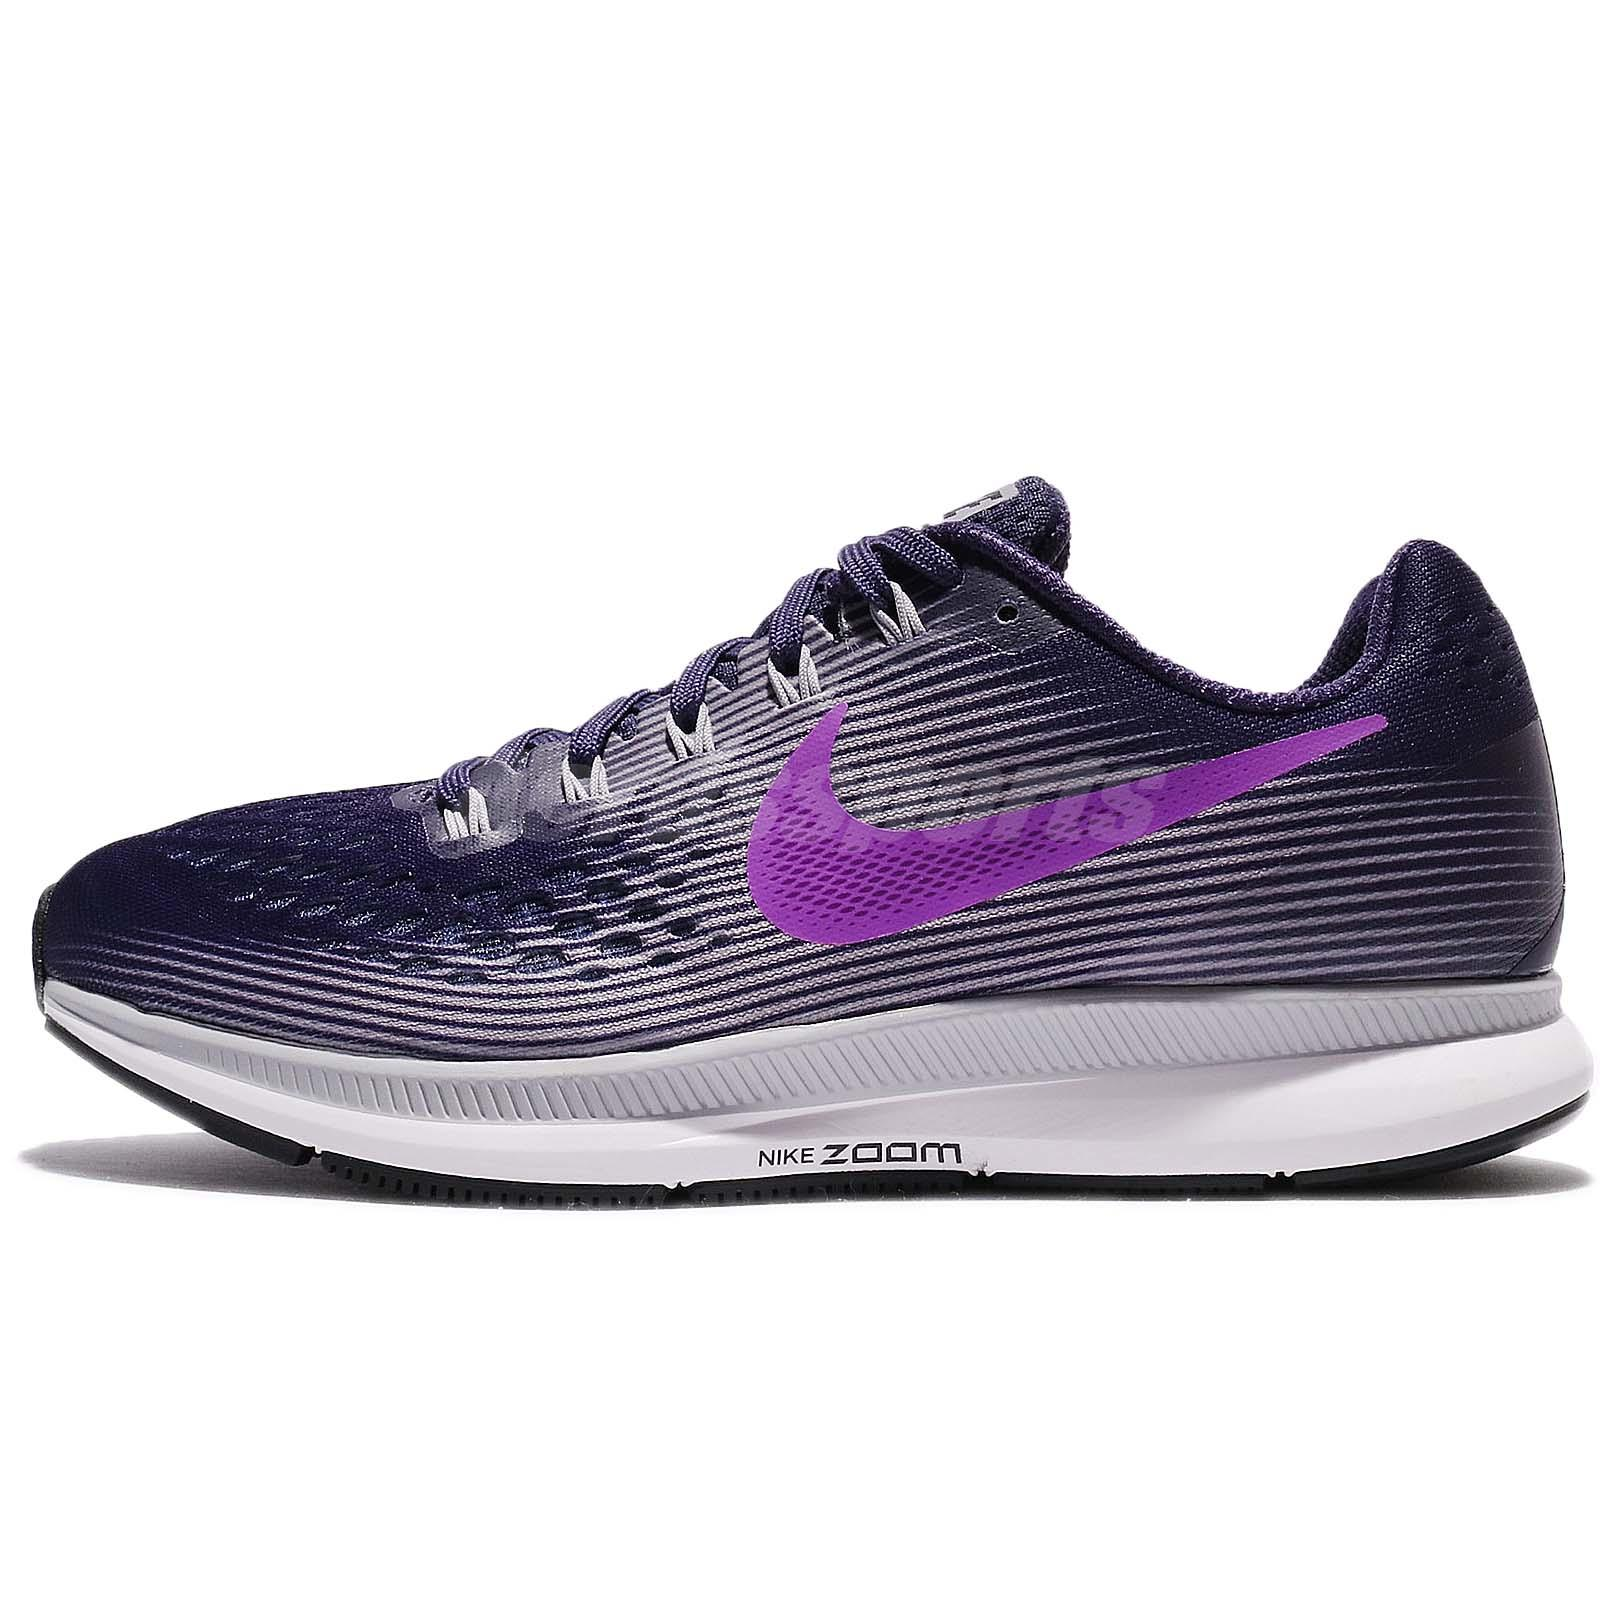 9775395e2ef Wmns Nike Air Zoom Pegasus 34 Ink Hyper Violet Women Running Shoes 880560- 500